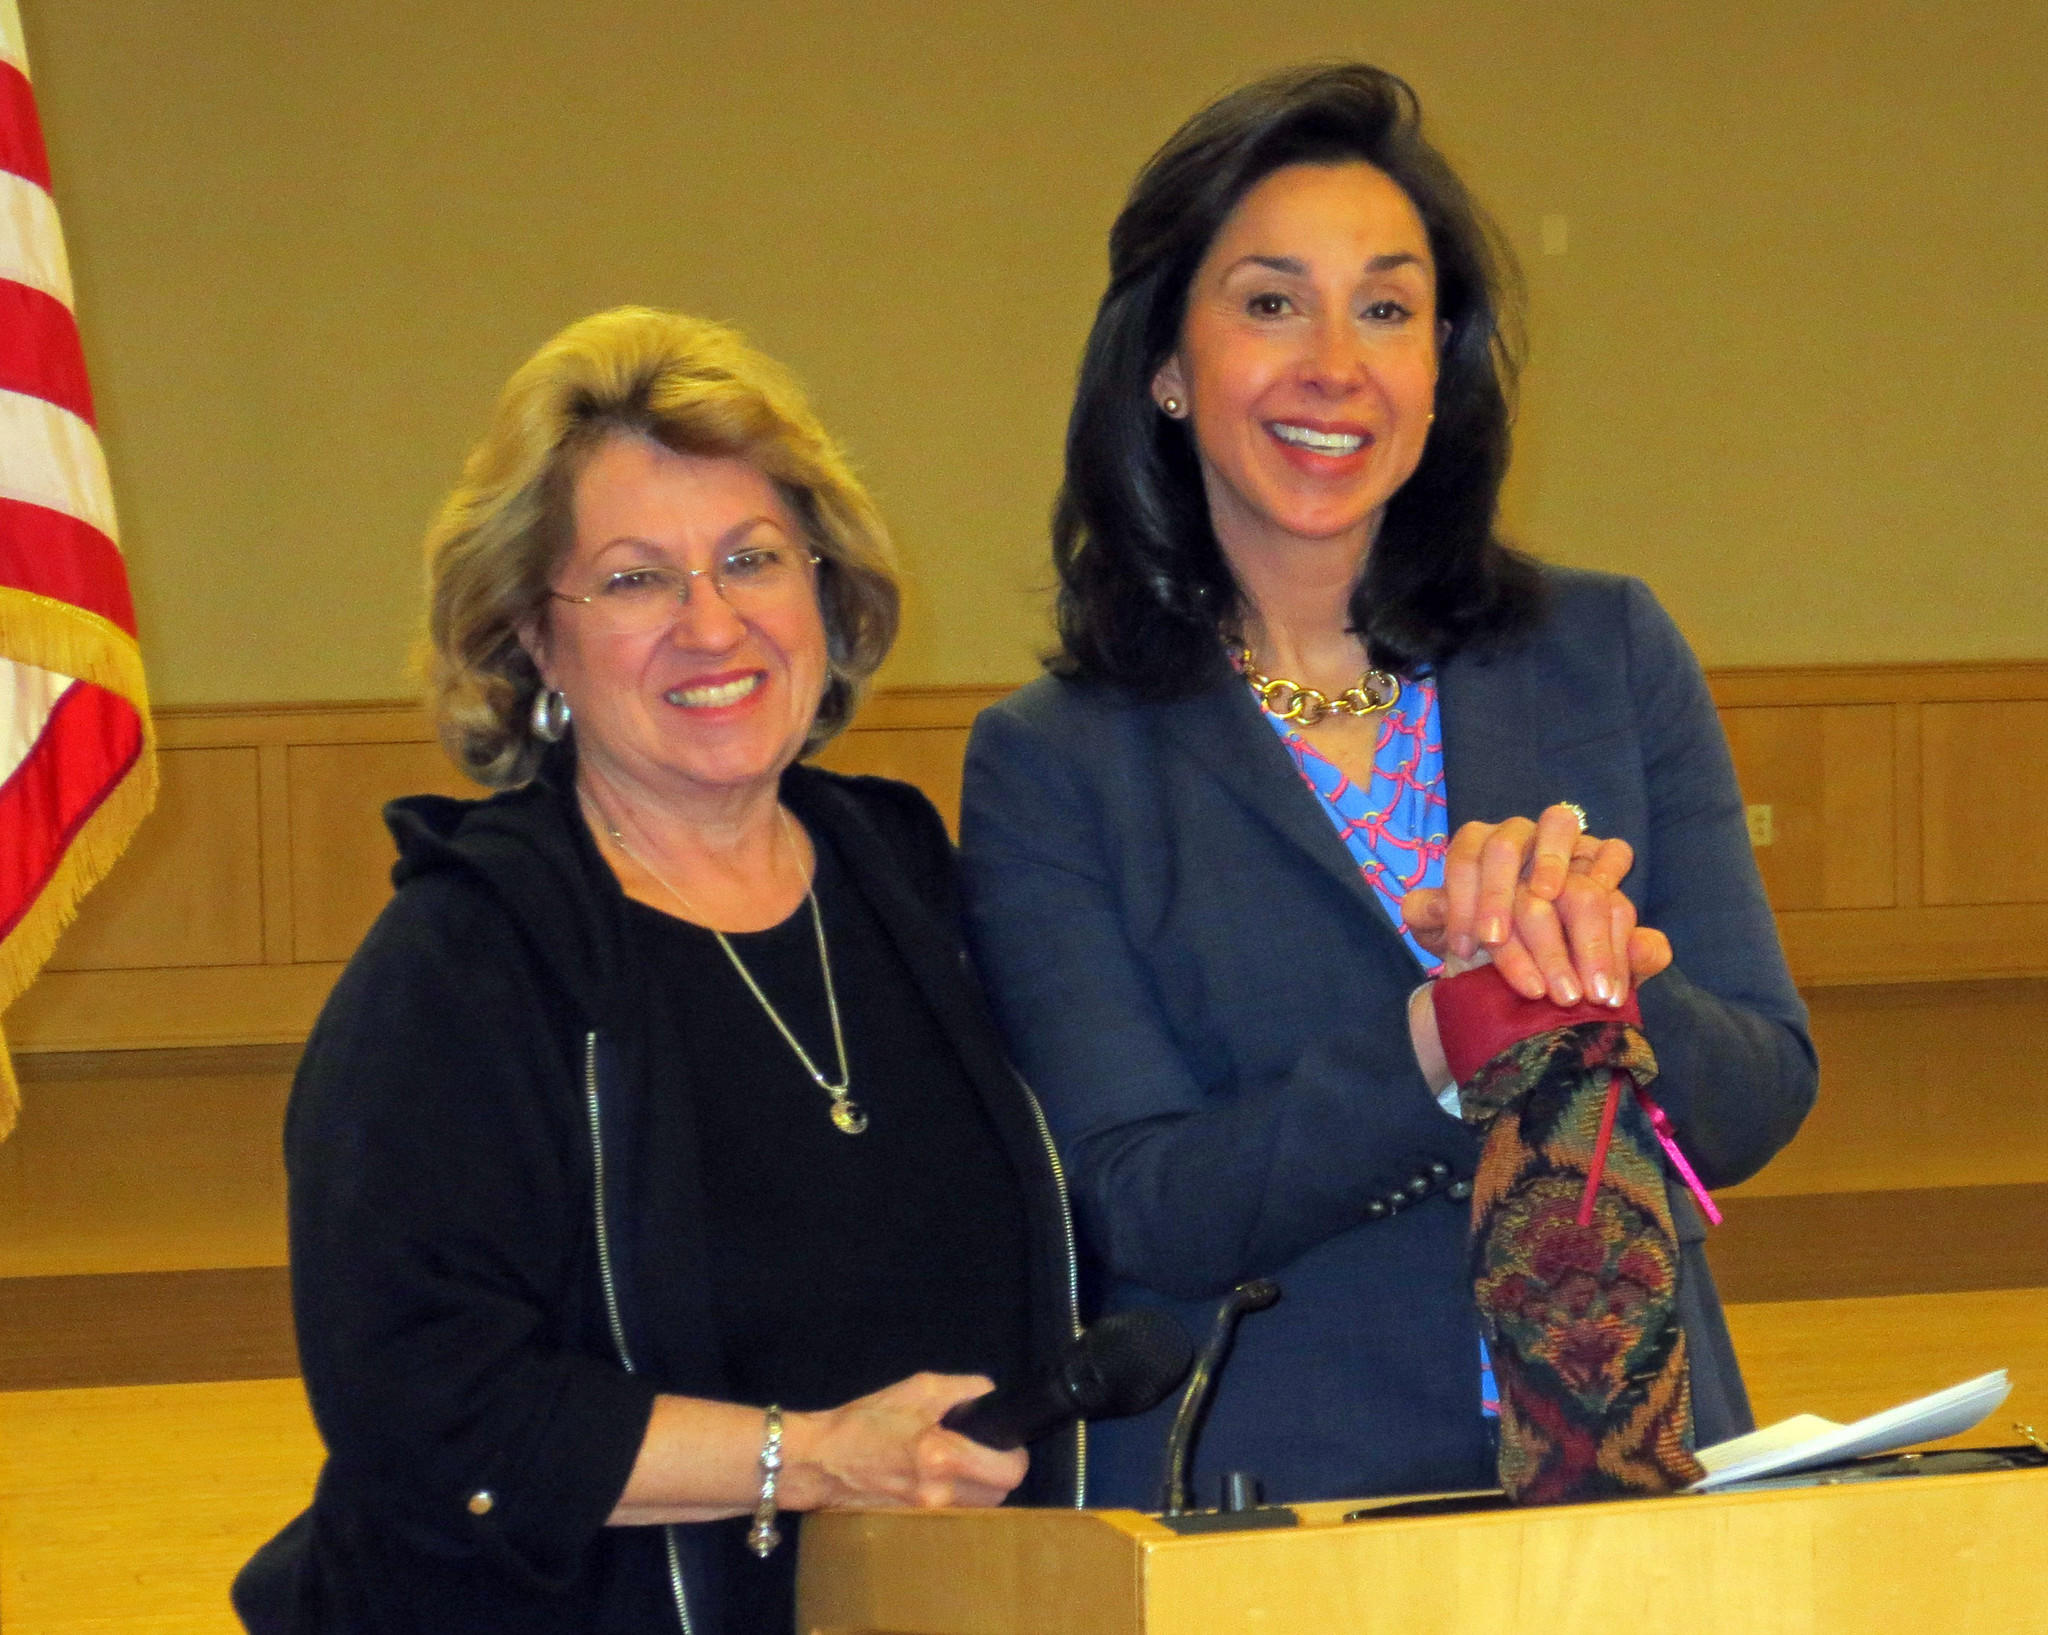 From left to right: Jenny Czyrko, Farmington Valley Woman's Club president; and Evelyn Daly, probate judge, Farmington-Burlington Probate Court.